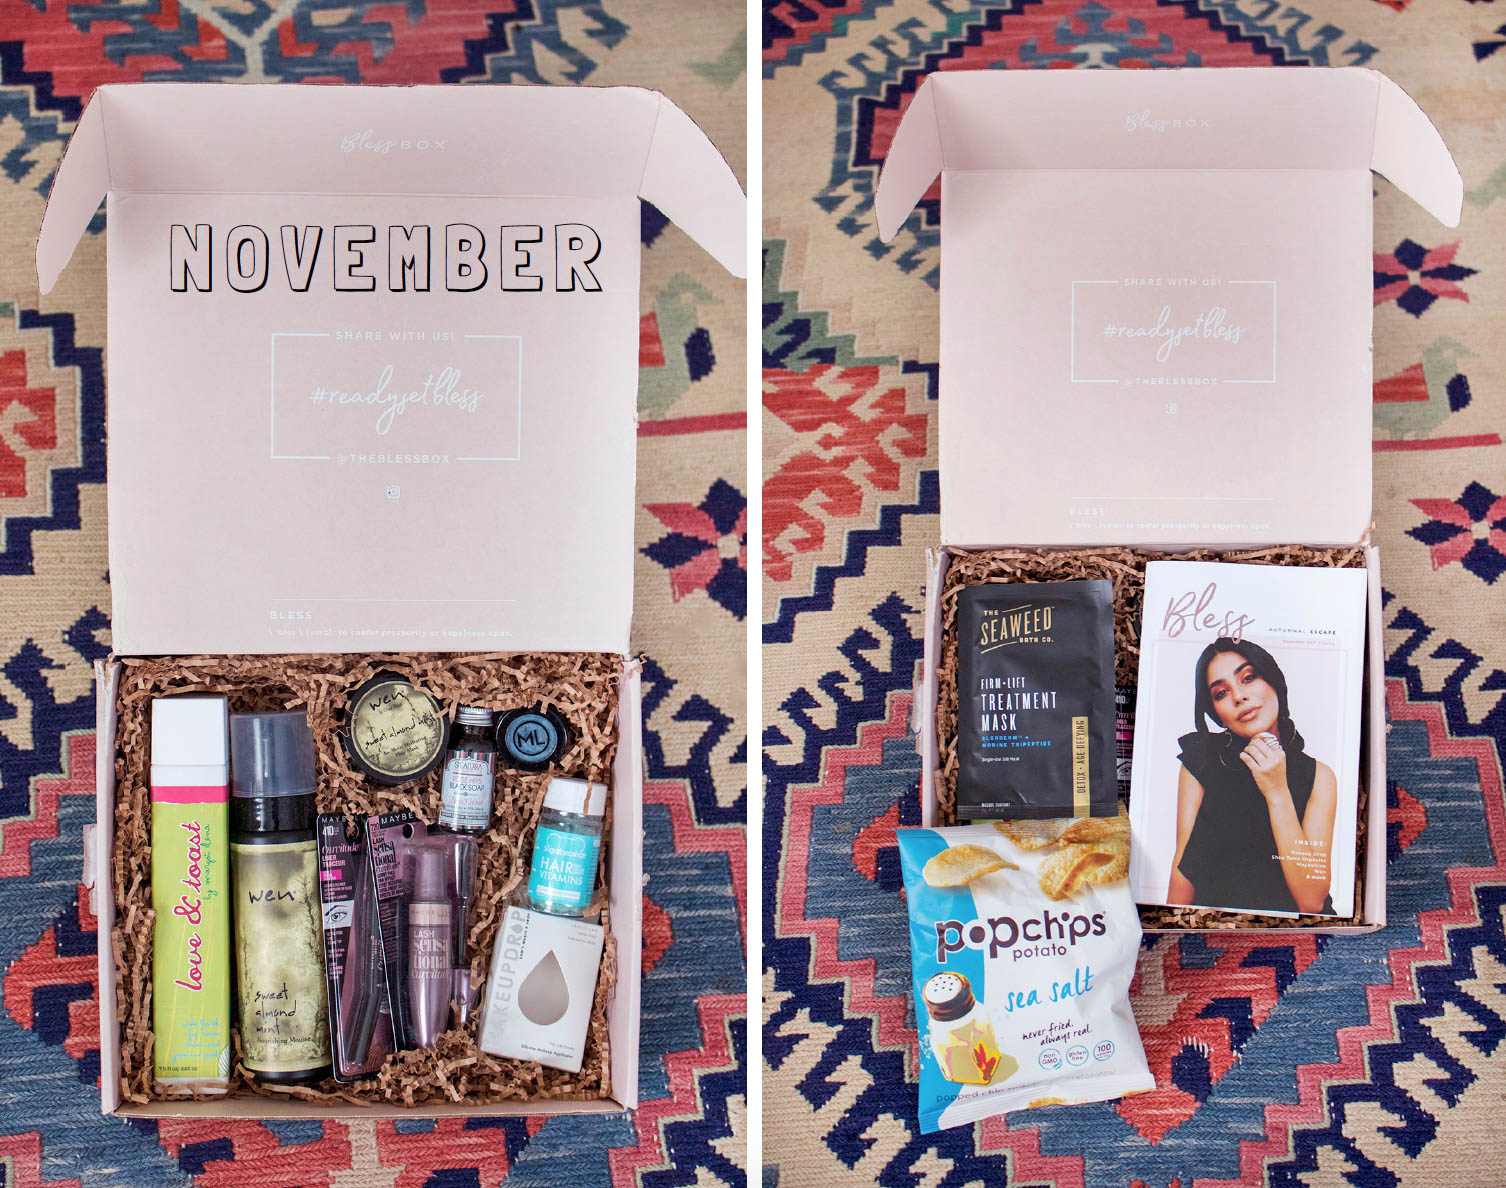 November-Bless-Box-review-Shenska-1